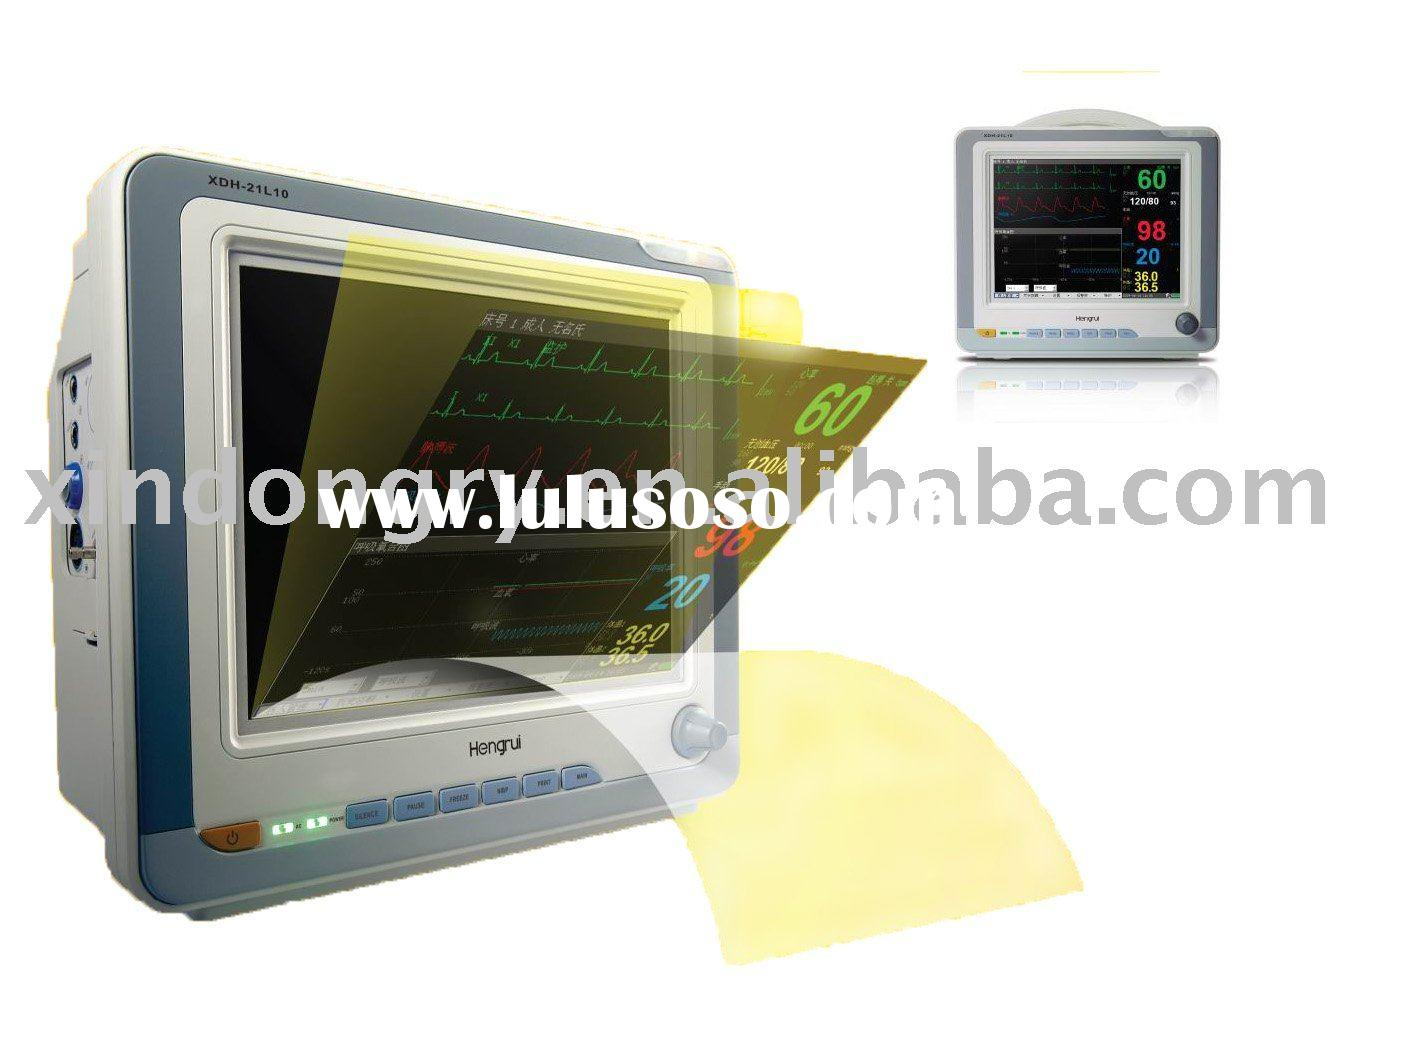 10.4 inch Color TFT Display Patient Monitor in Medical Device